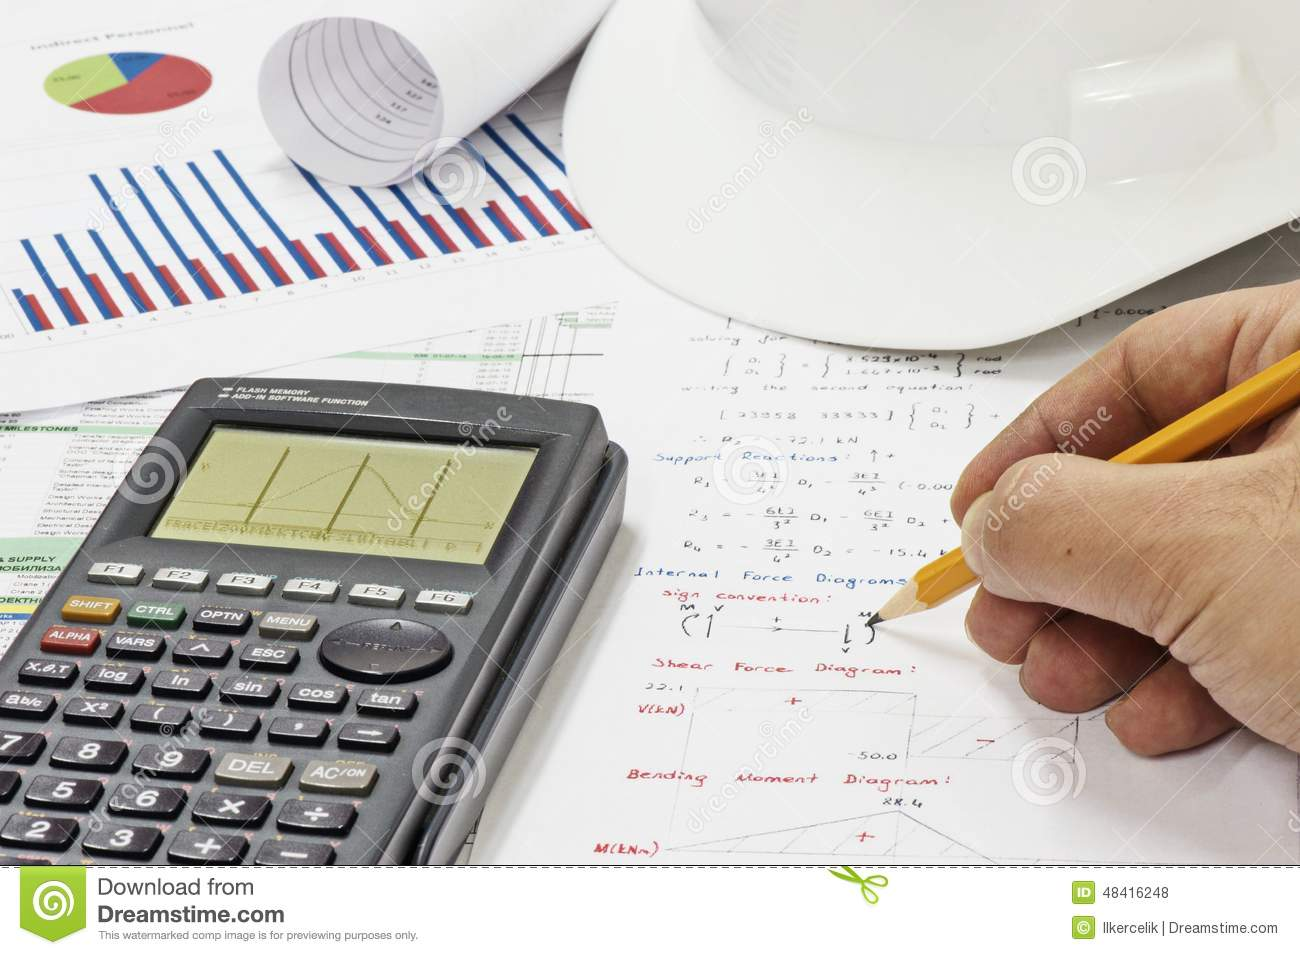 Structural Engineering Calculations : Structural analysis calculations stock photo image of